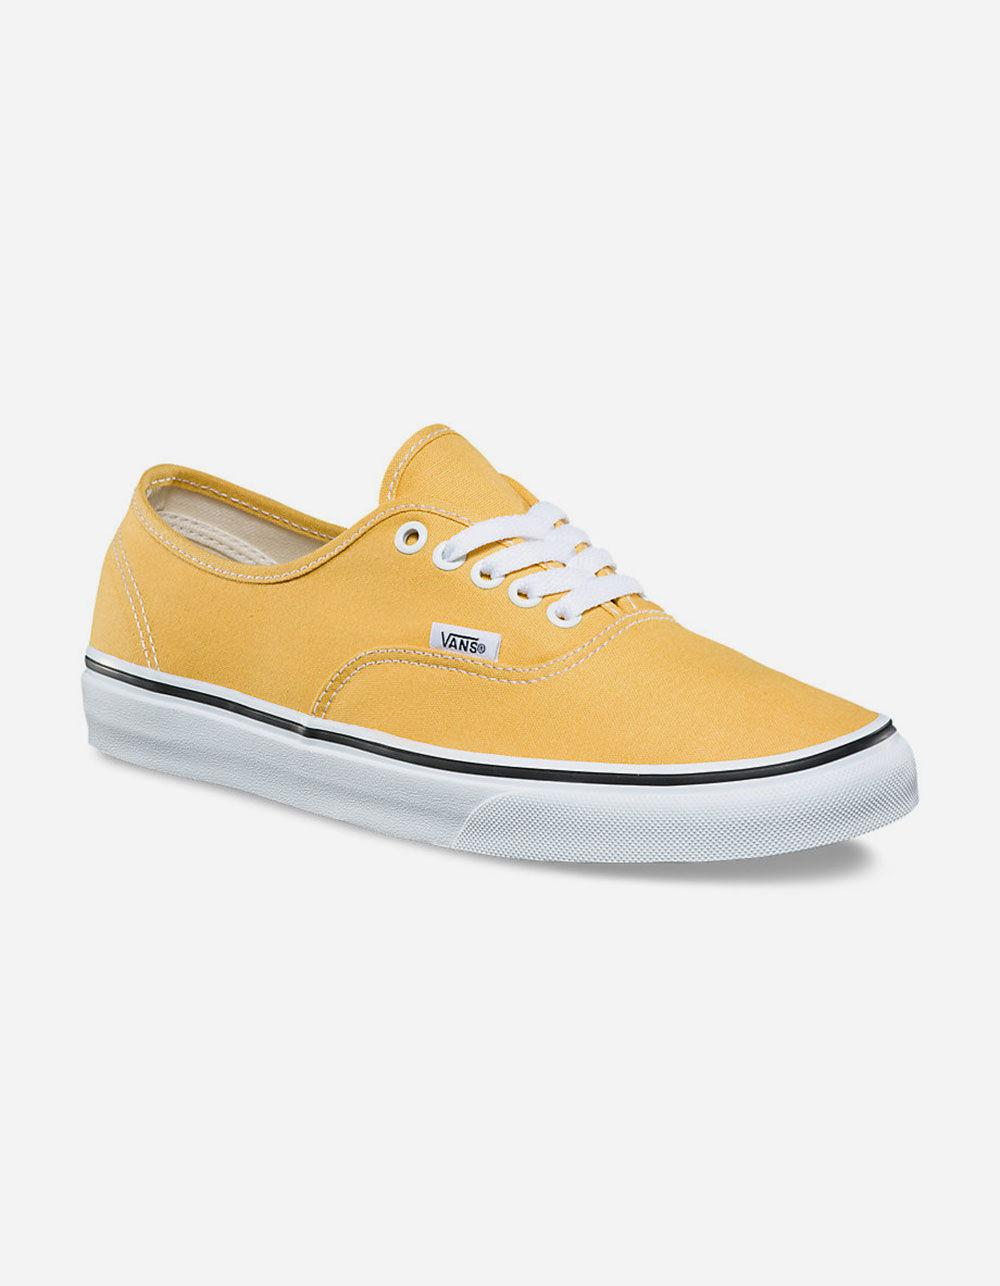 c6442751d4 Lyst - Vans Authentic Ochre   True White Womens Shoes in White